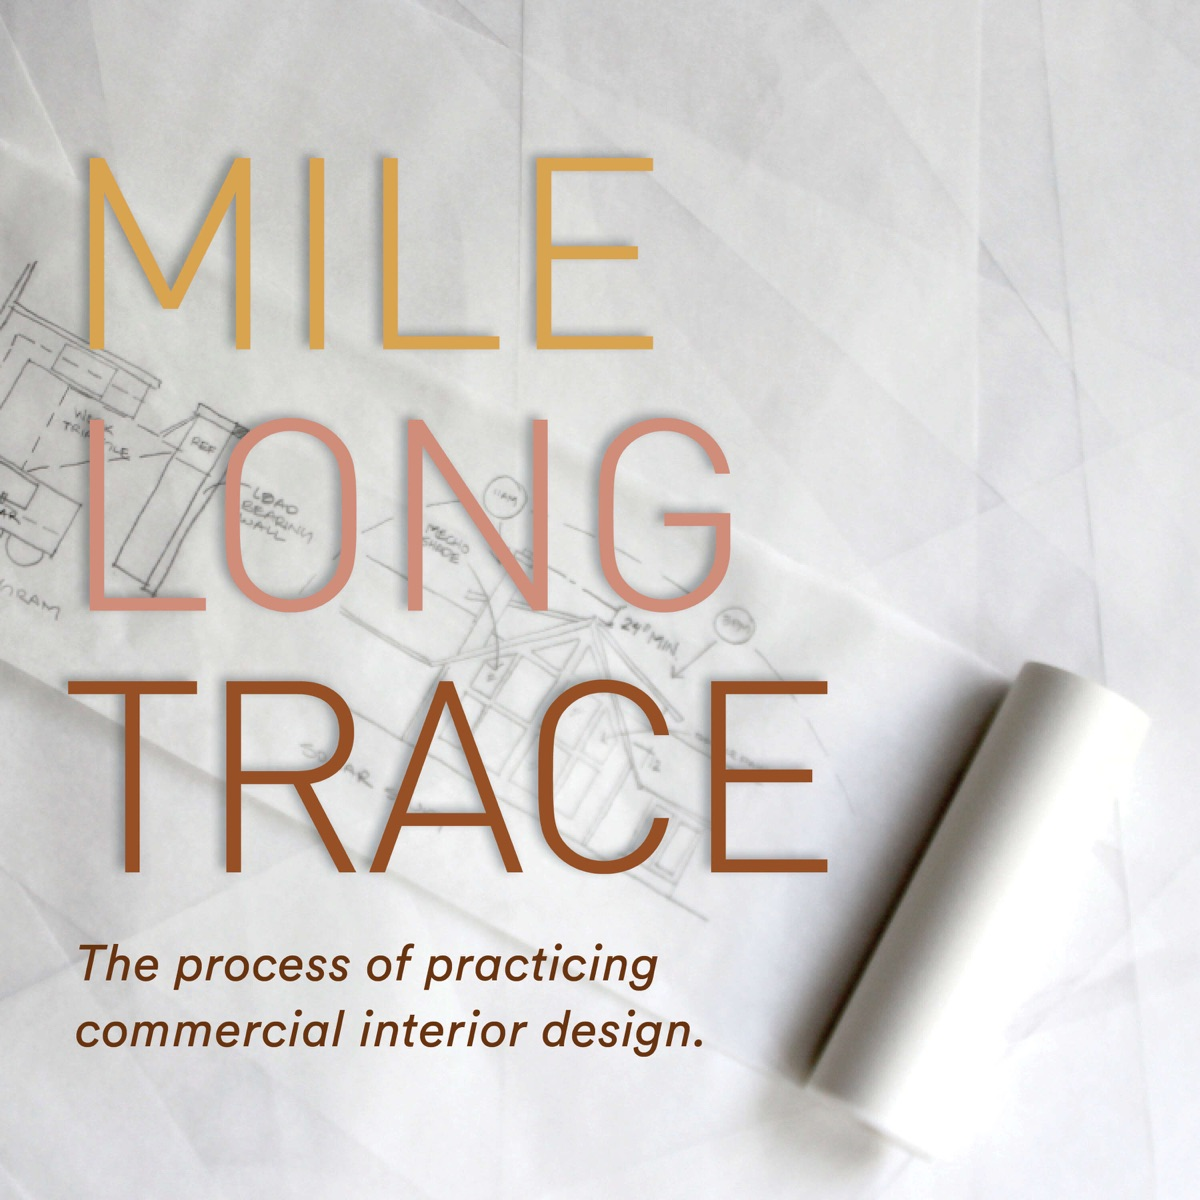 Mile Long Trace Interior Architecture & Interior Design